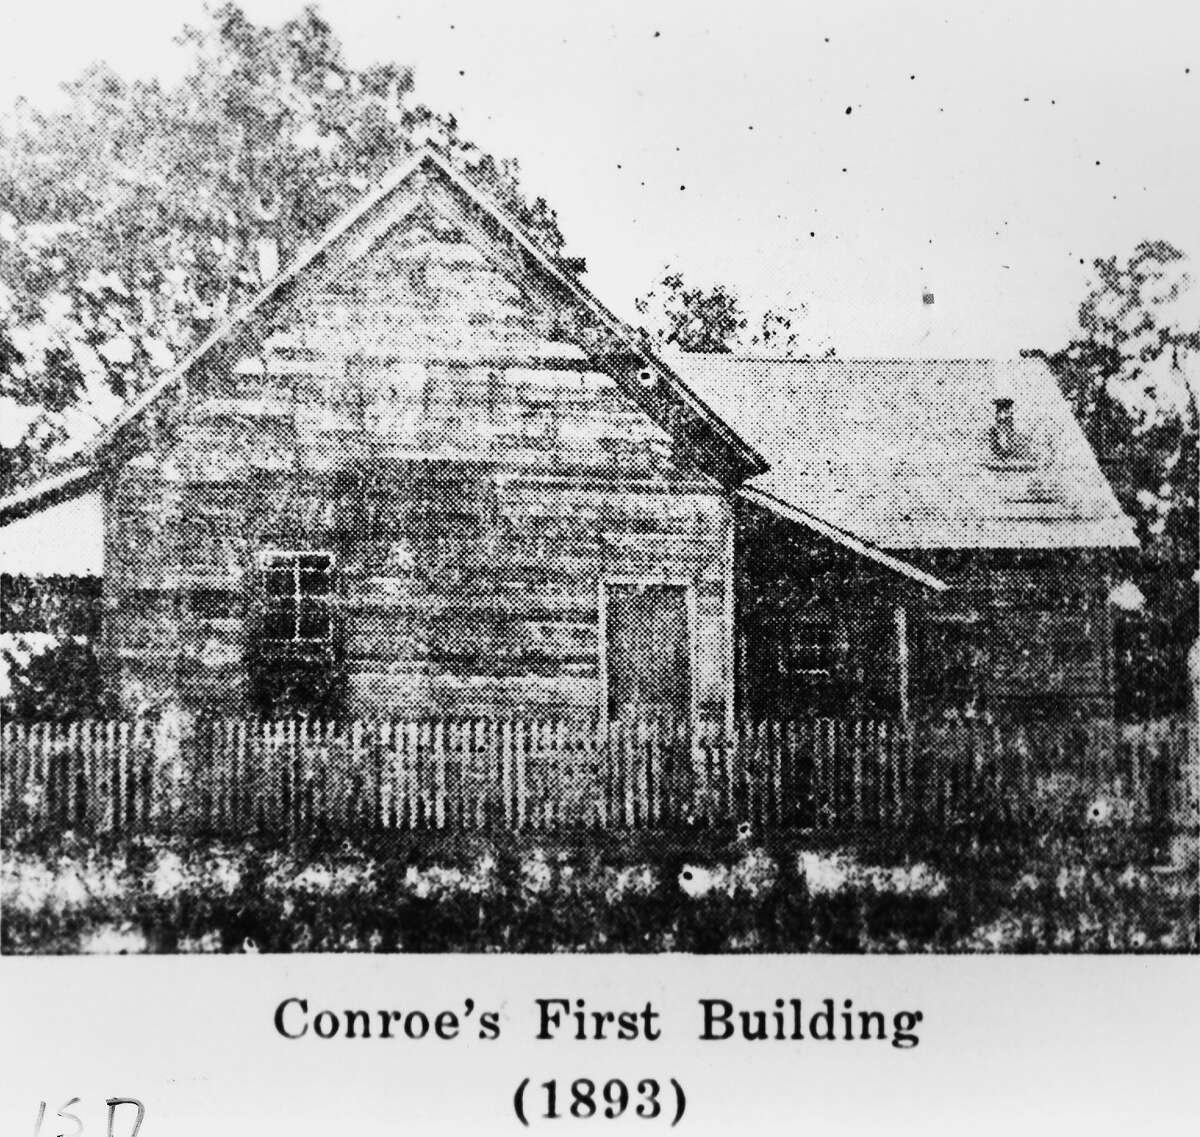 Conroe's first school building, Conroe Mill School, near the Beach community circa 1893. Mrs. J.A. Knight was the school's first teacher. The district is celebrating 125 years and throughout the year photos from the district will be shared.